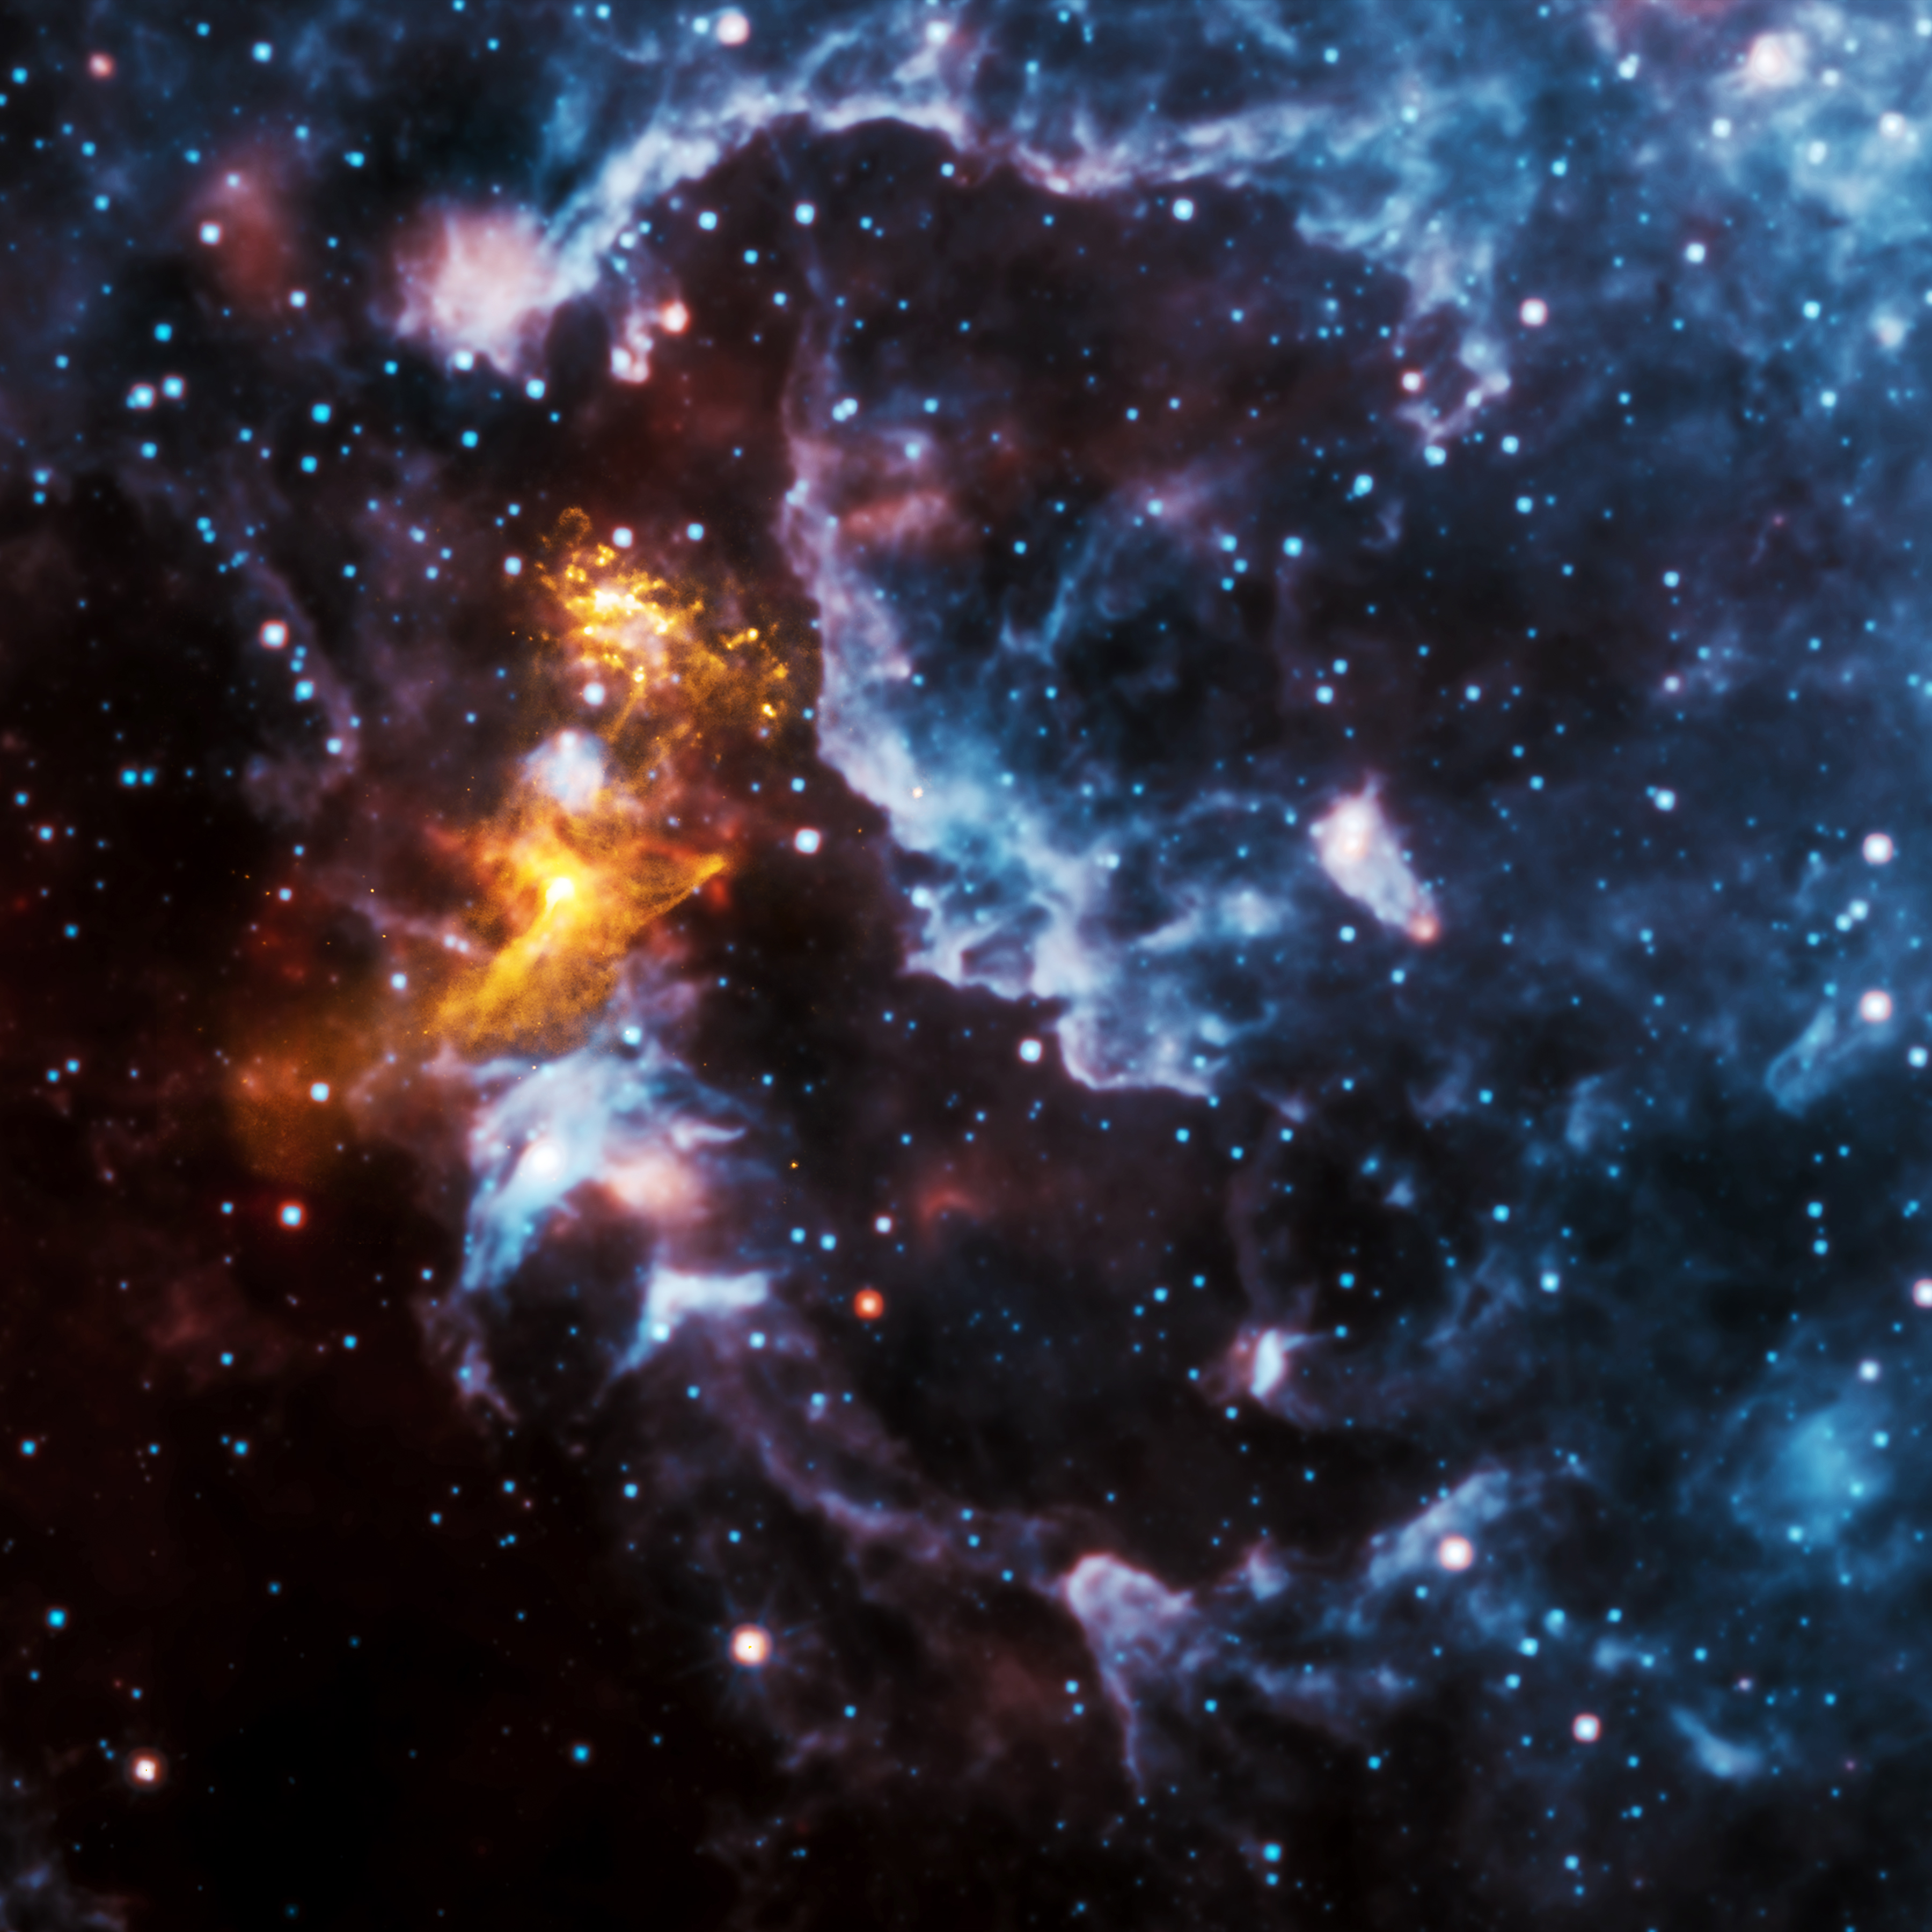 byhttps://upload.wikimedia.org/wikipedia/commons/a/a6/PIA18848-PSRB1509-58-ChandraXRay-WiseIR-20141023.jpg